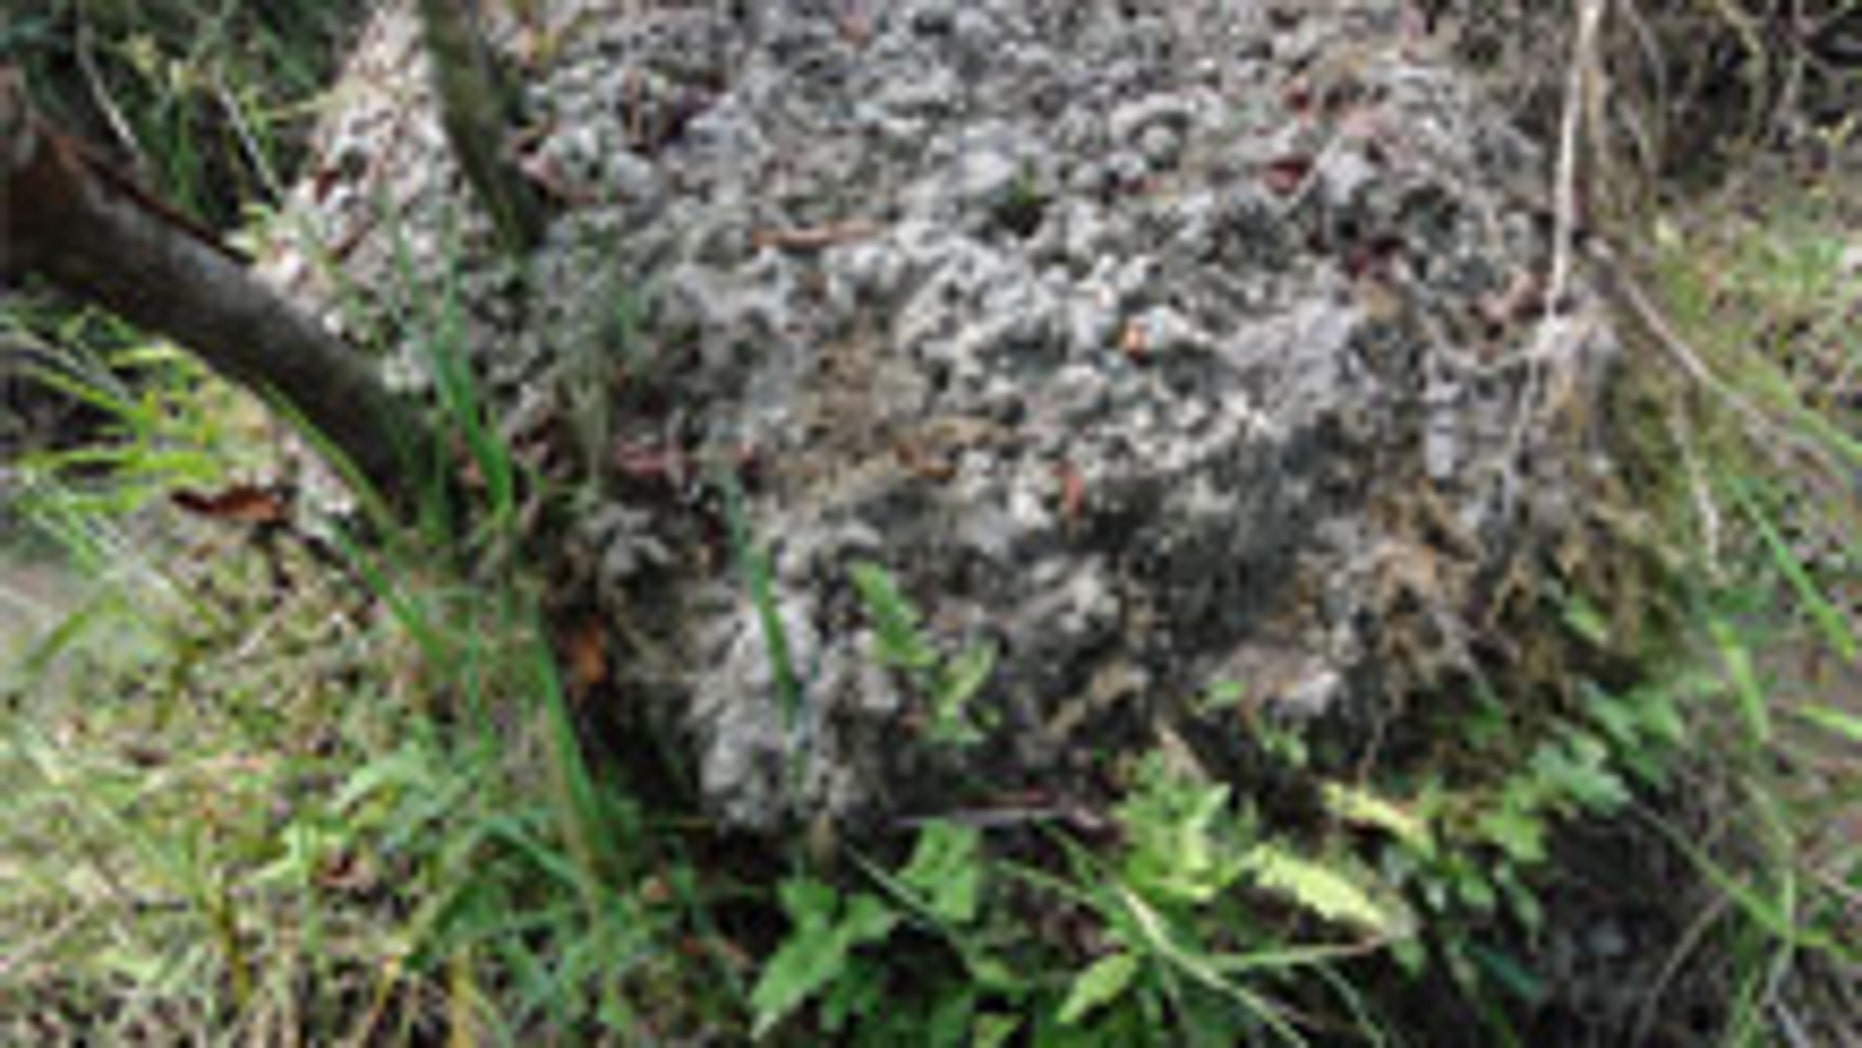 Large worms create surales in South American wetlands. (University of Exeter)